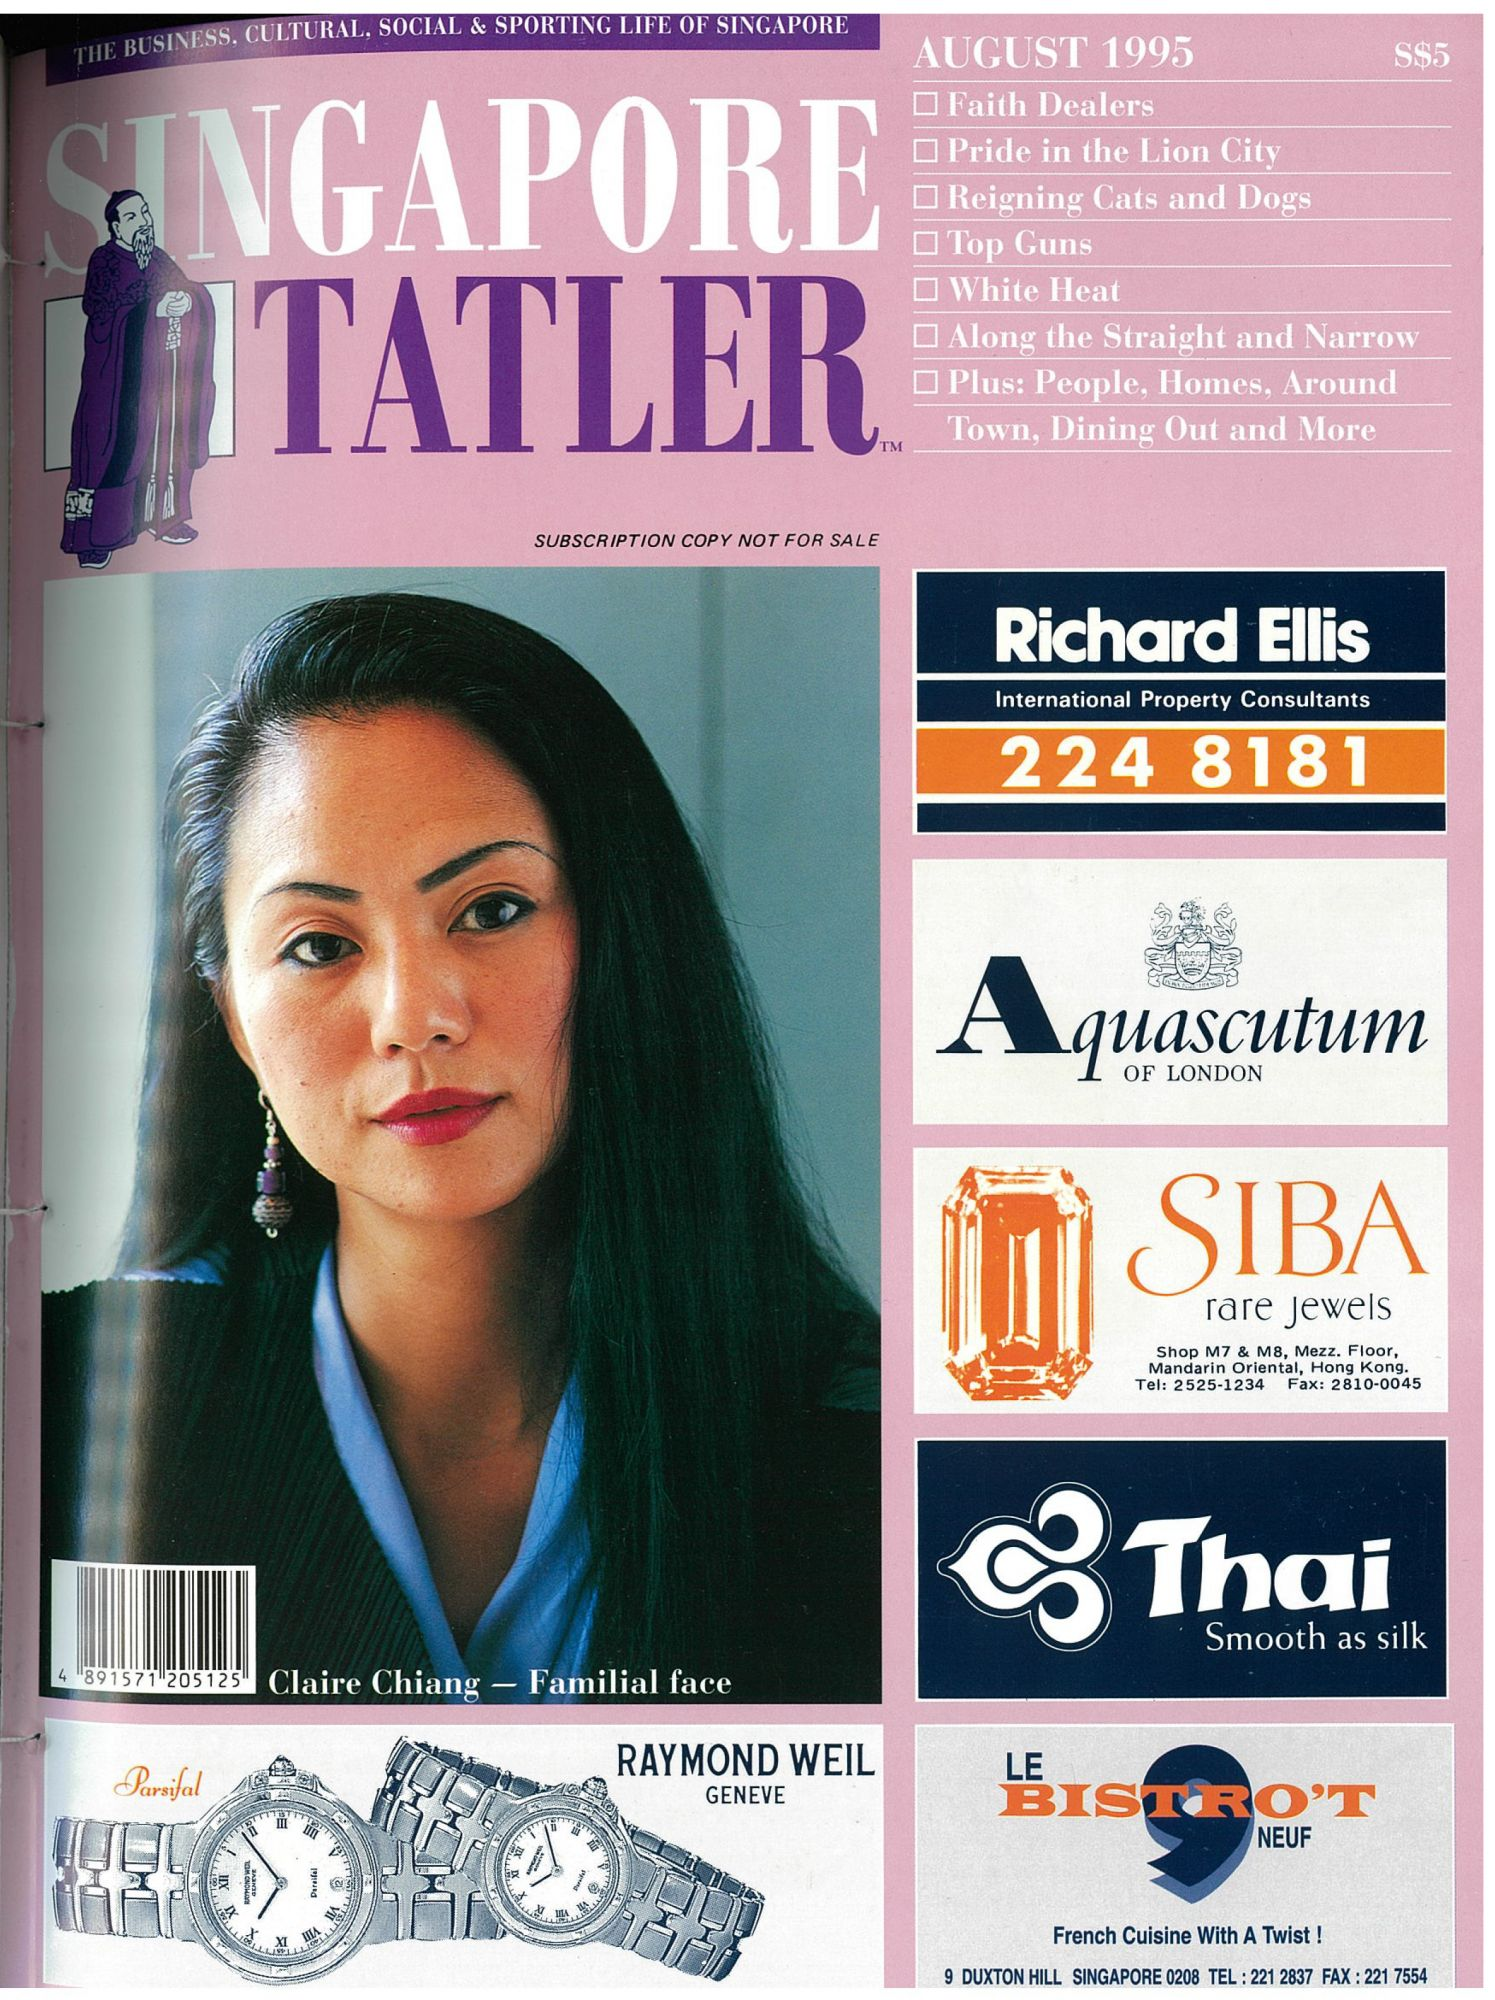 Claire Chiang (Aug 1995)